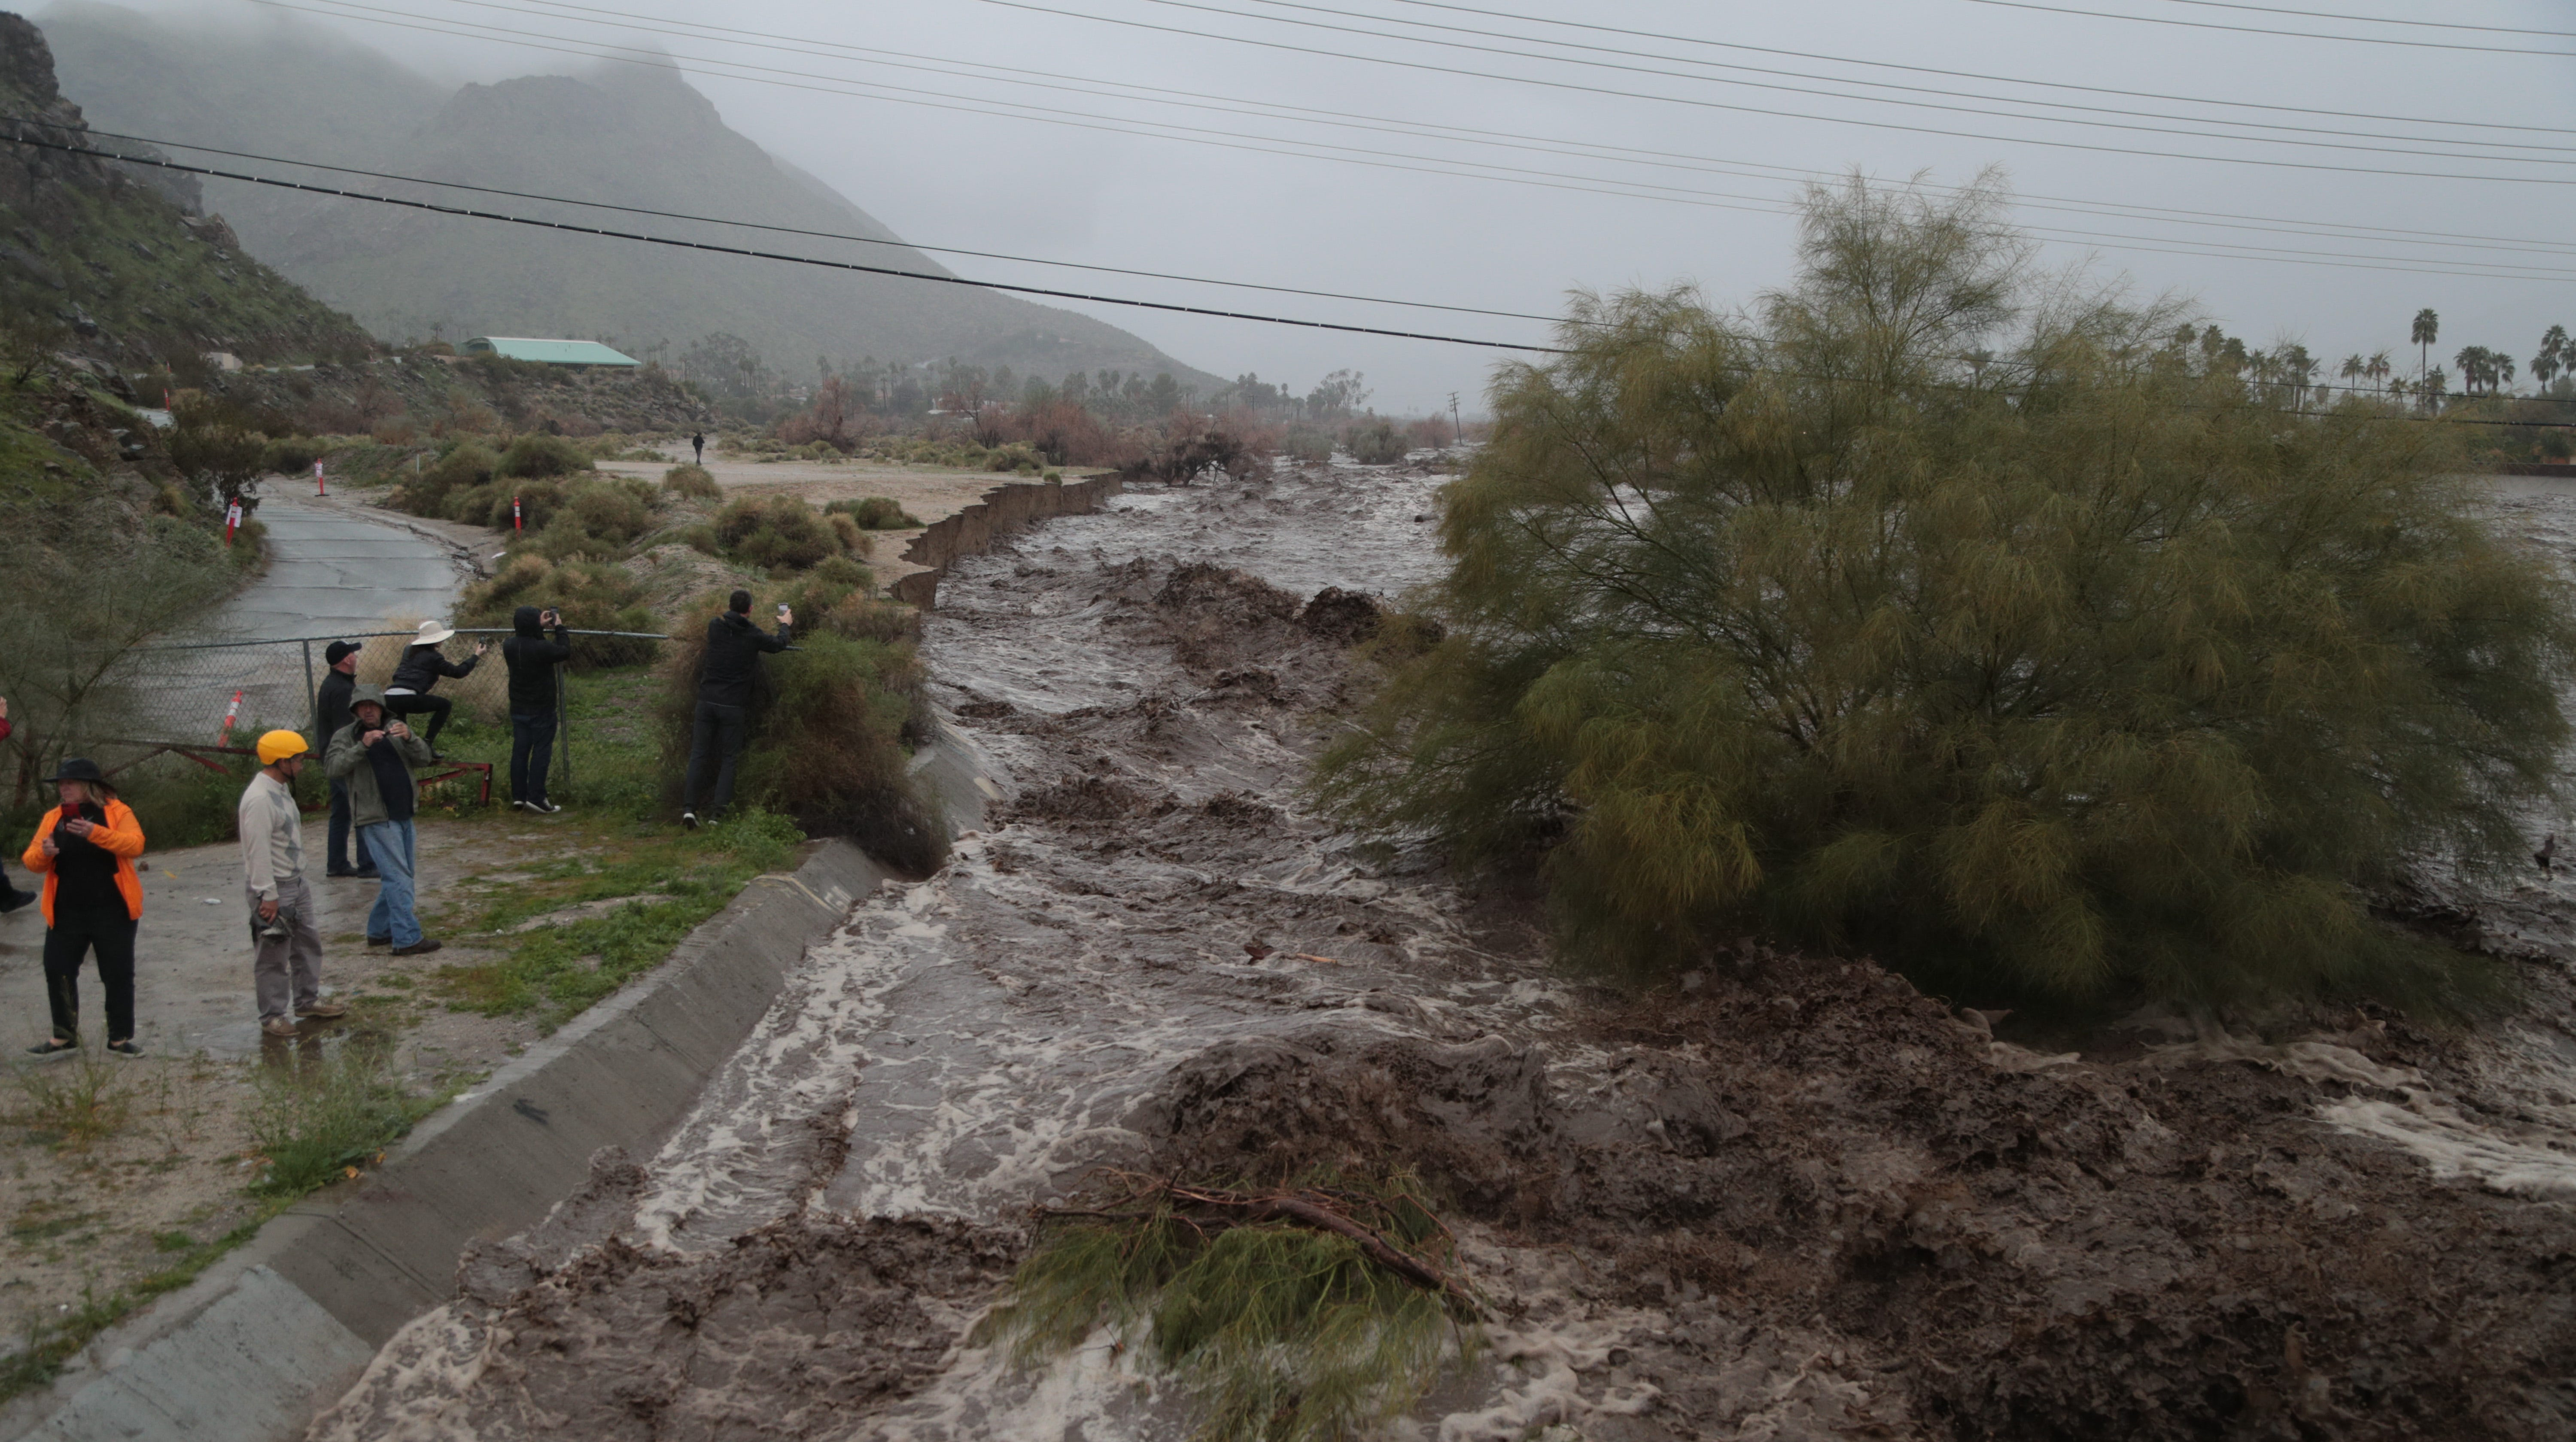 Palm Springs council: At least $1M damage caused by Feb. 14 storm